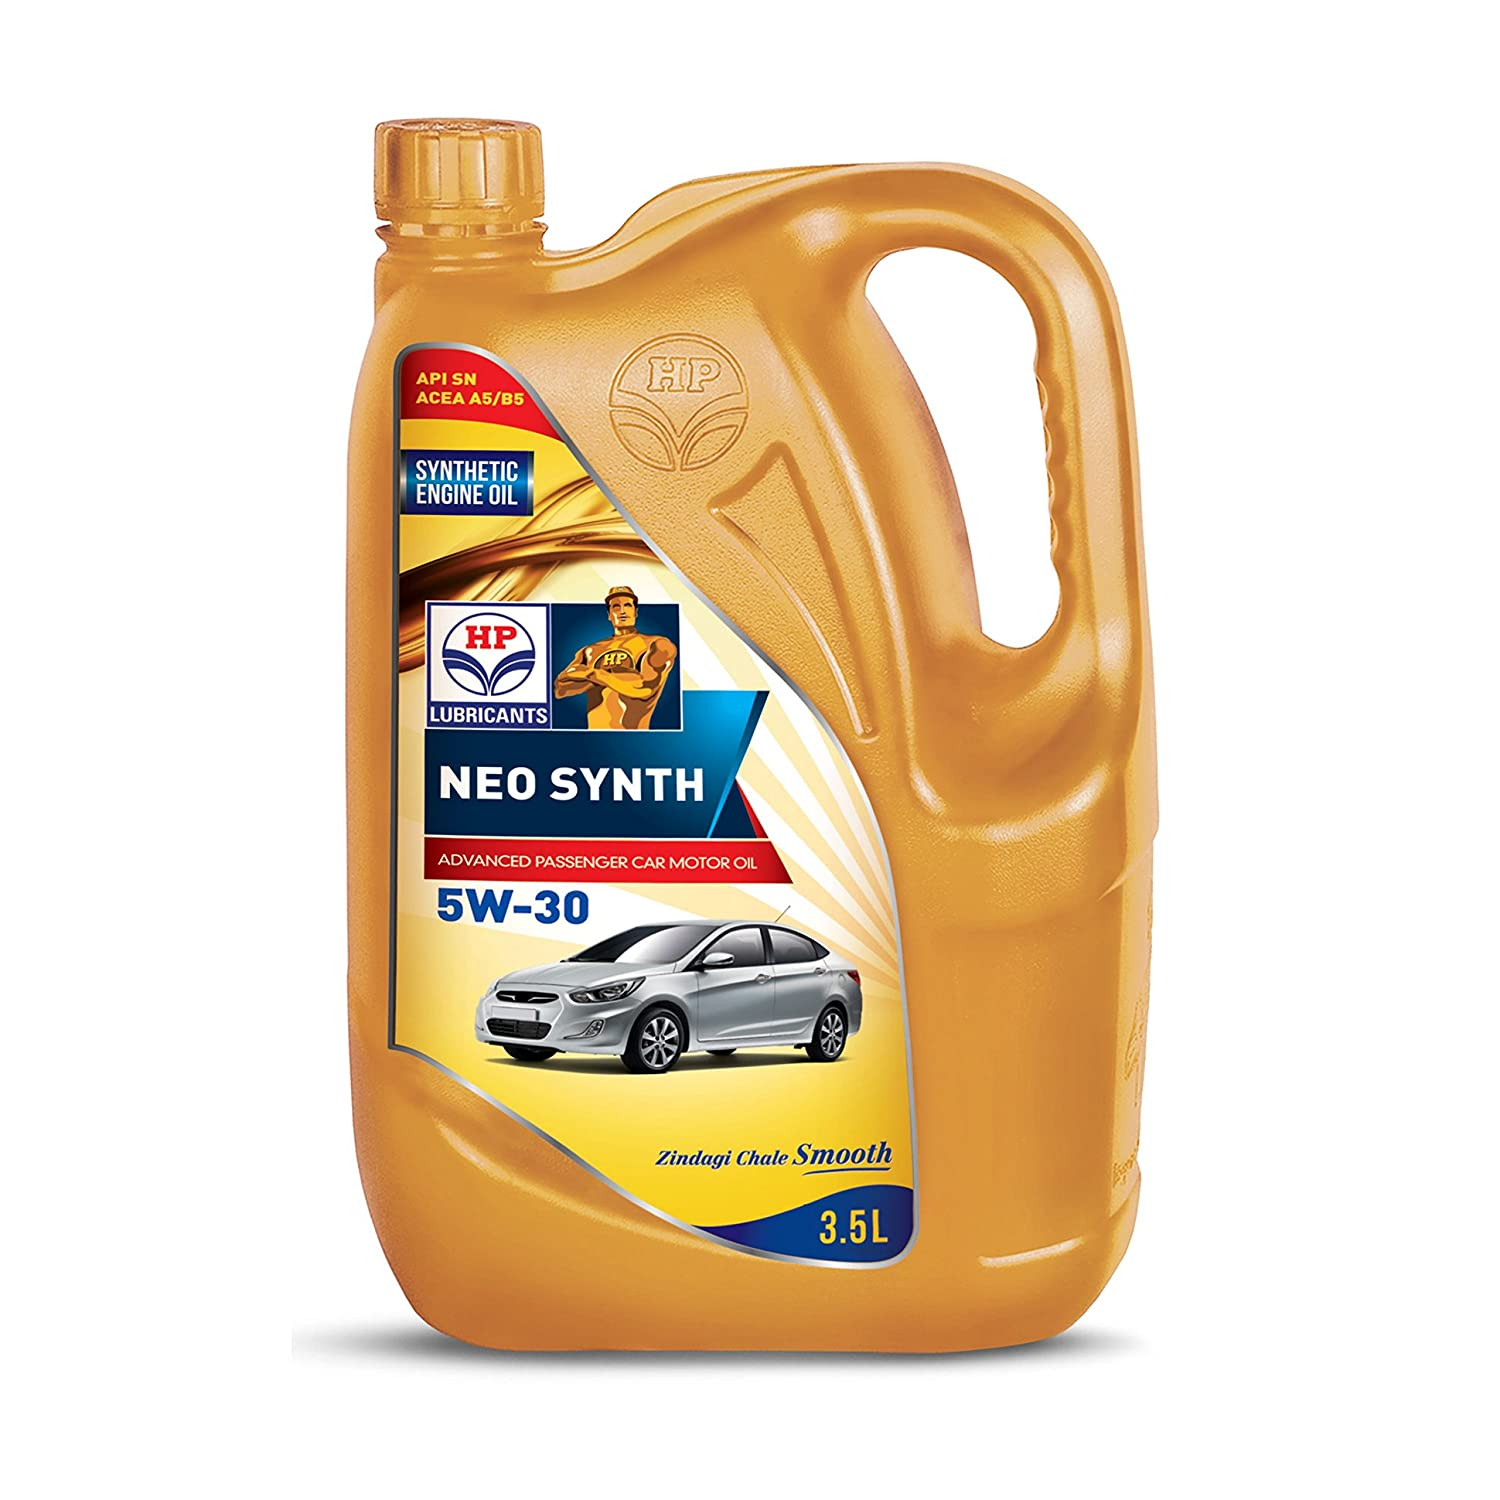 Hp Lubricants Neo Synth 5w 30 Api Sn Semi Synthetic Engine Oil For